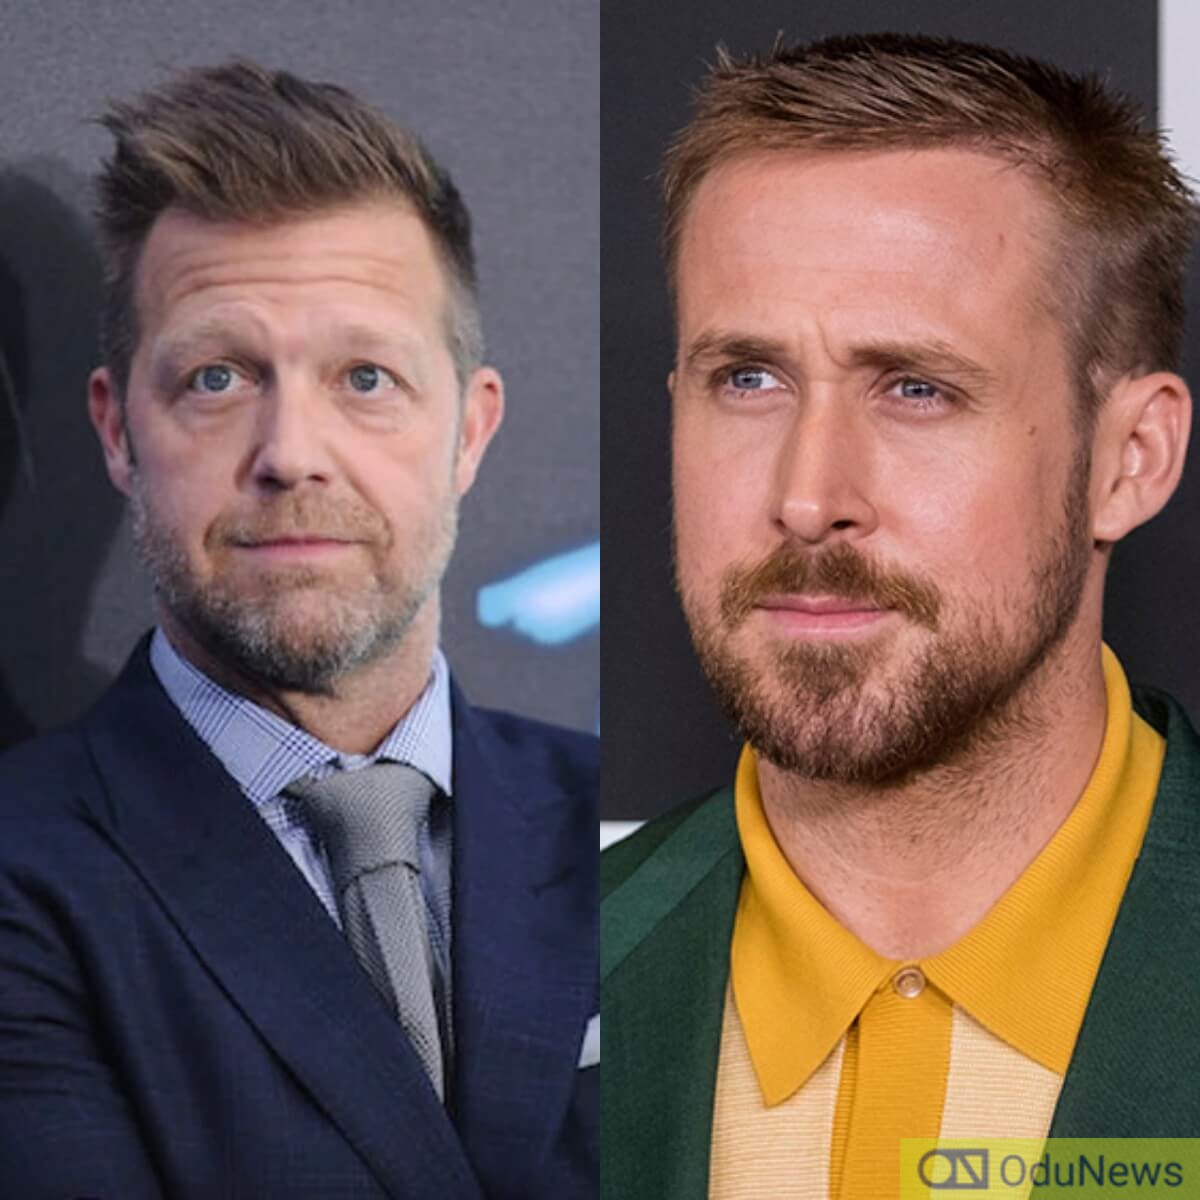 David Leitch to direct Ryan Gosling in upcoming movie